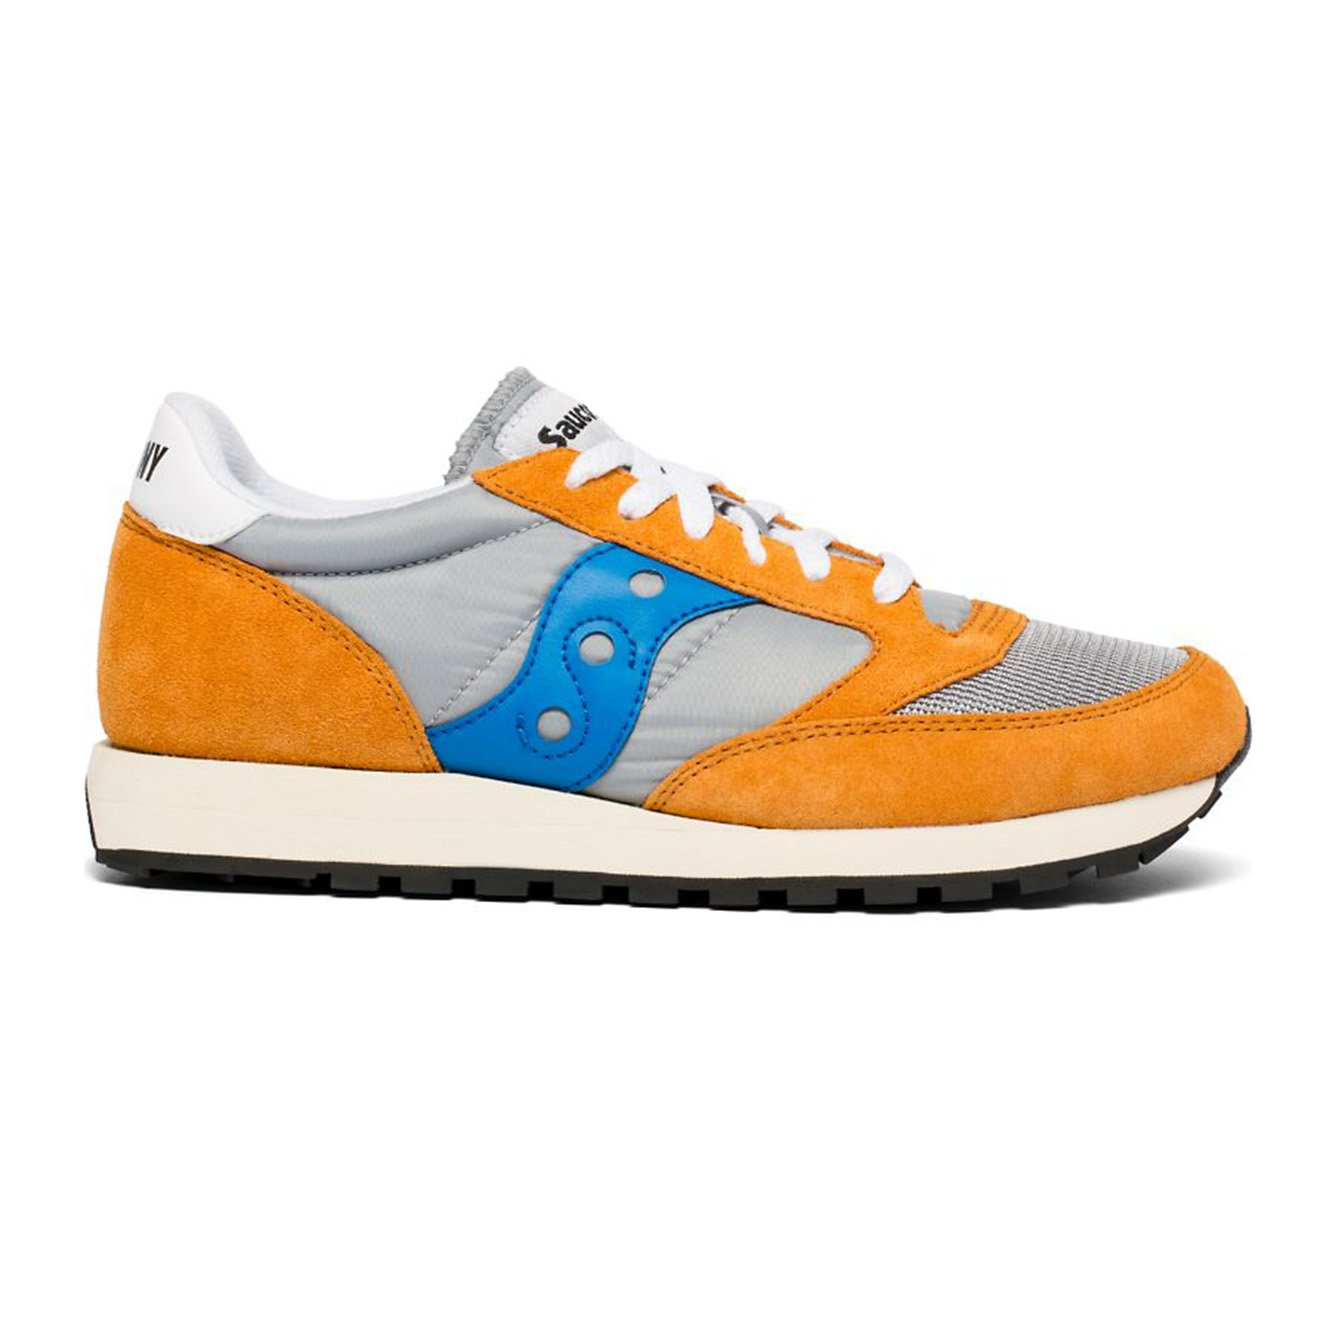 official photos d46c1 29a0f Saucony Jazz Original Vintage Trainers Orange / Grey / Blue - Yards Store